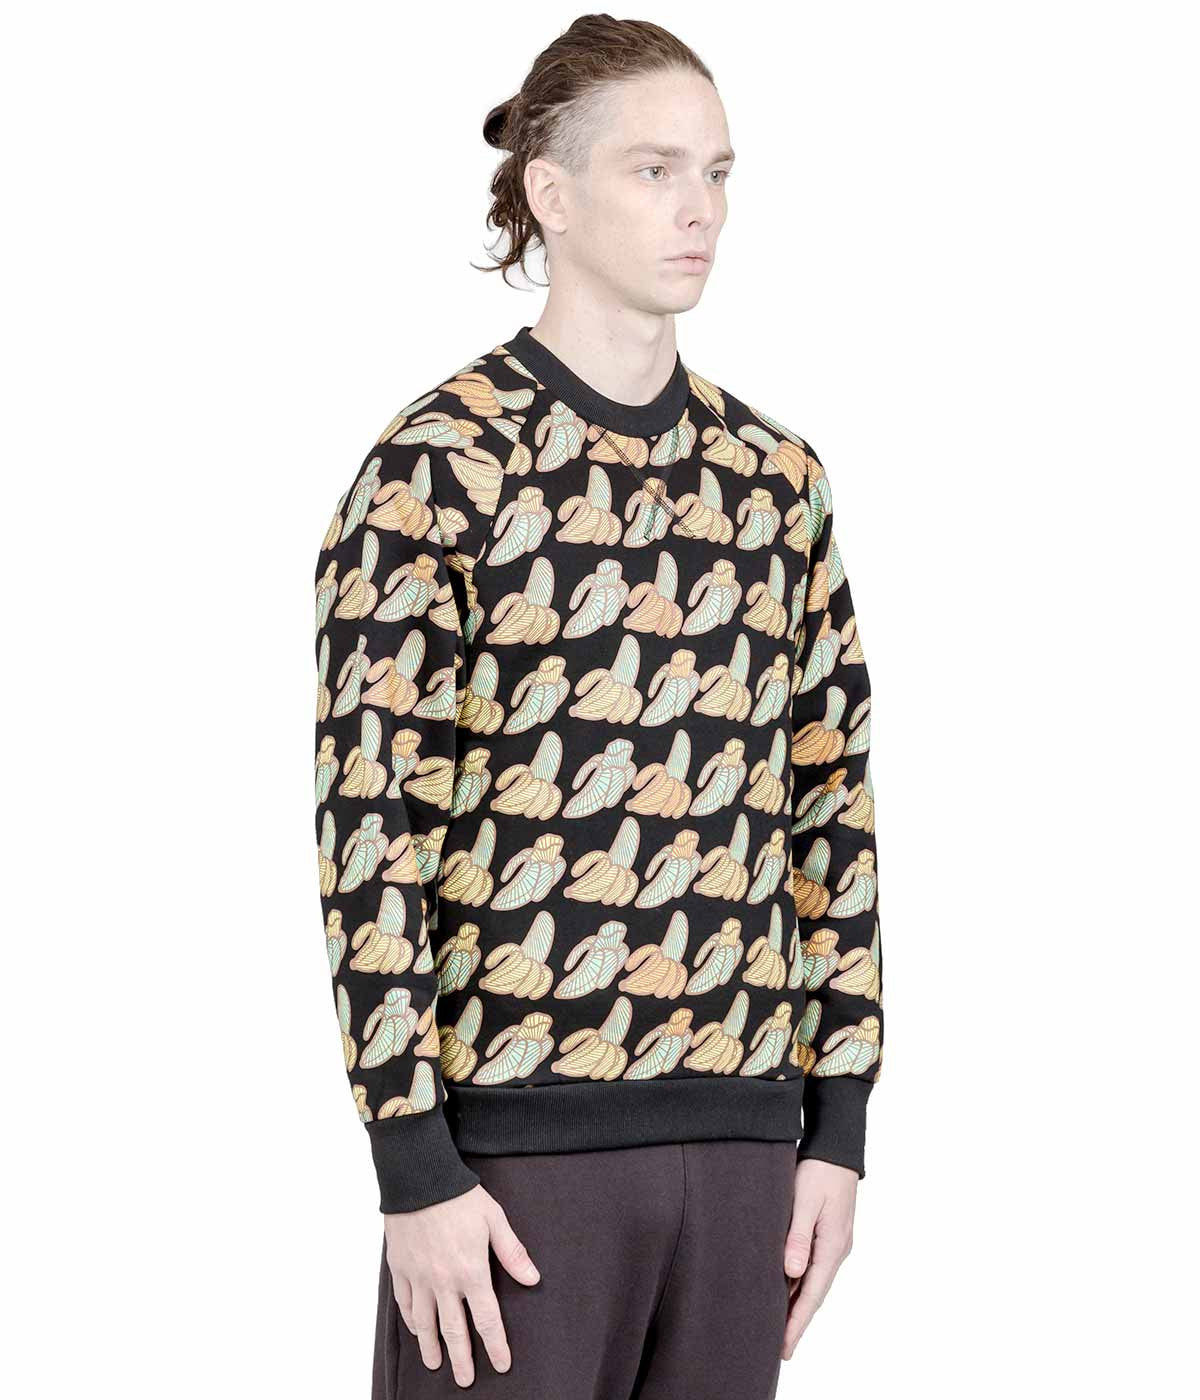 Black Sk8ting Allover Banana Sweatshirt